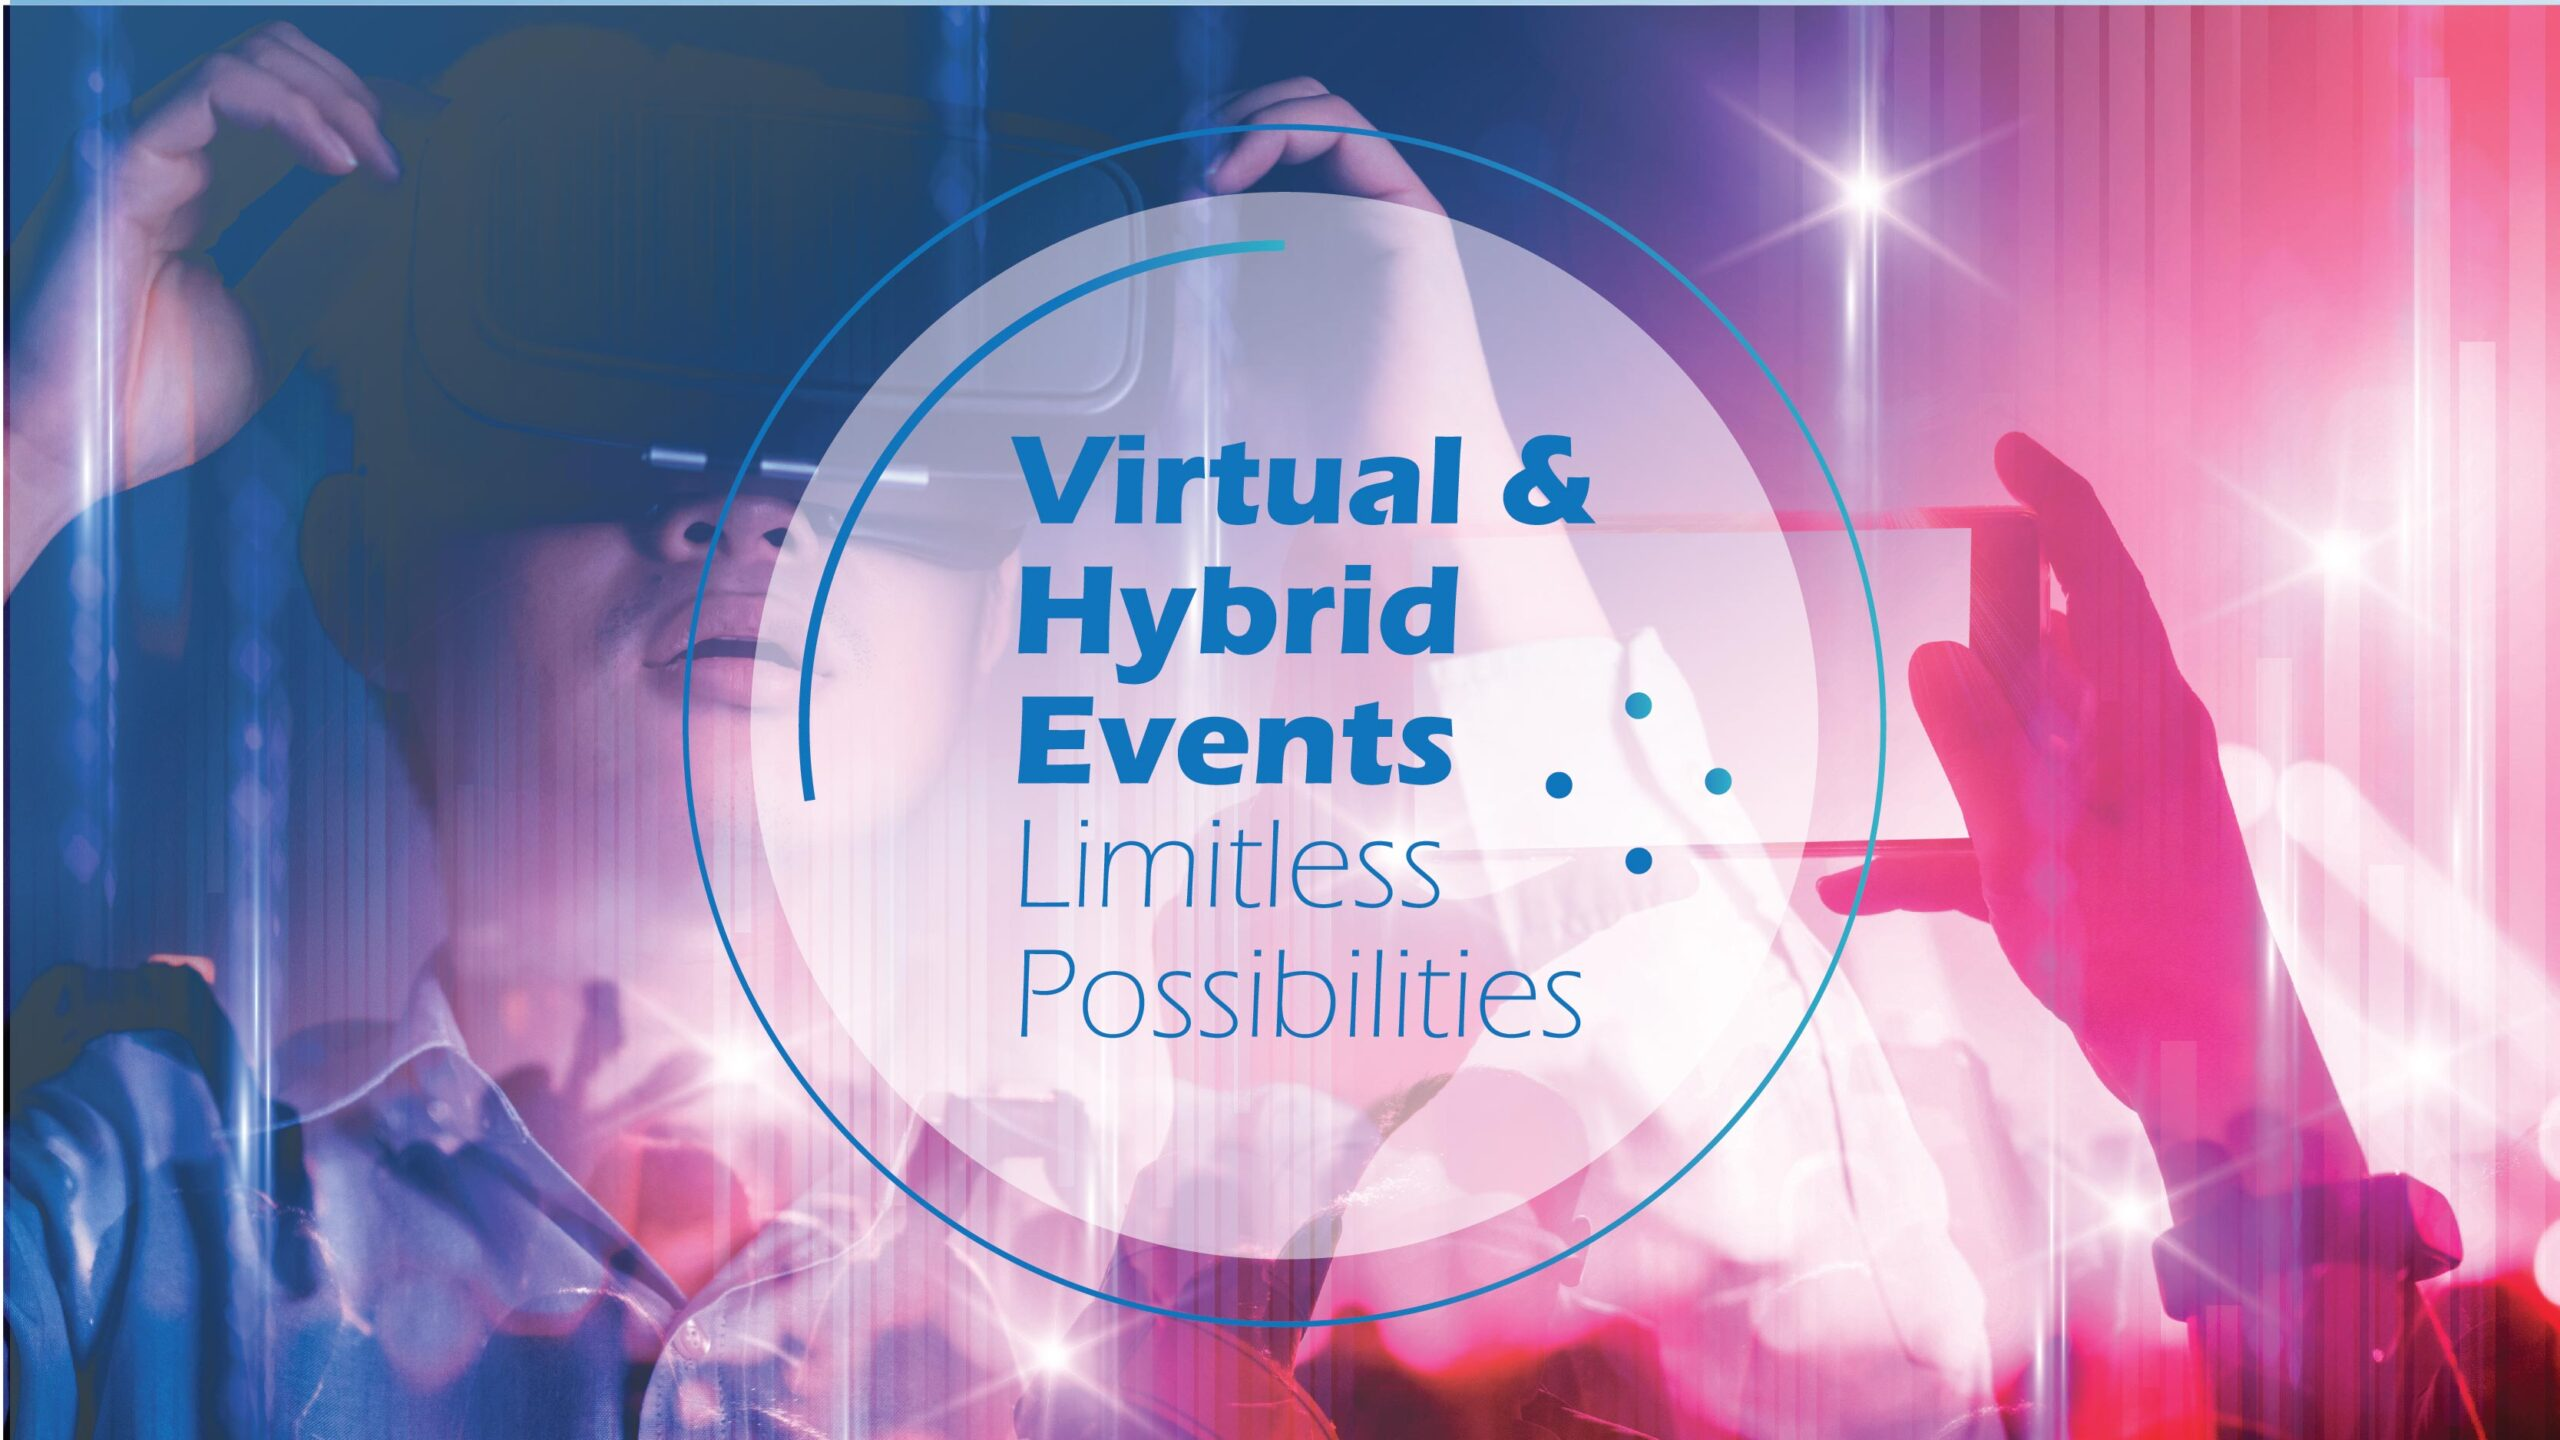 Virtual & Hybrid Events. Limitless Possibilities